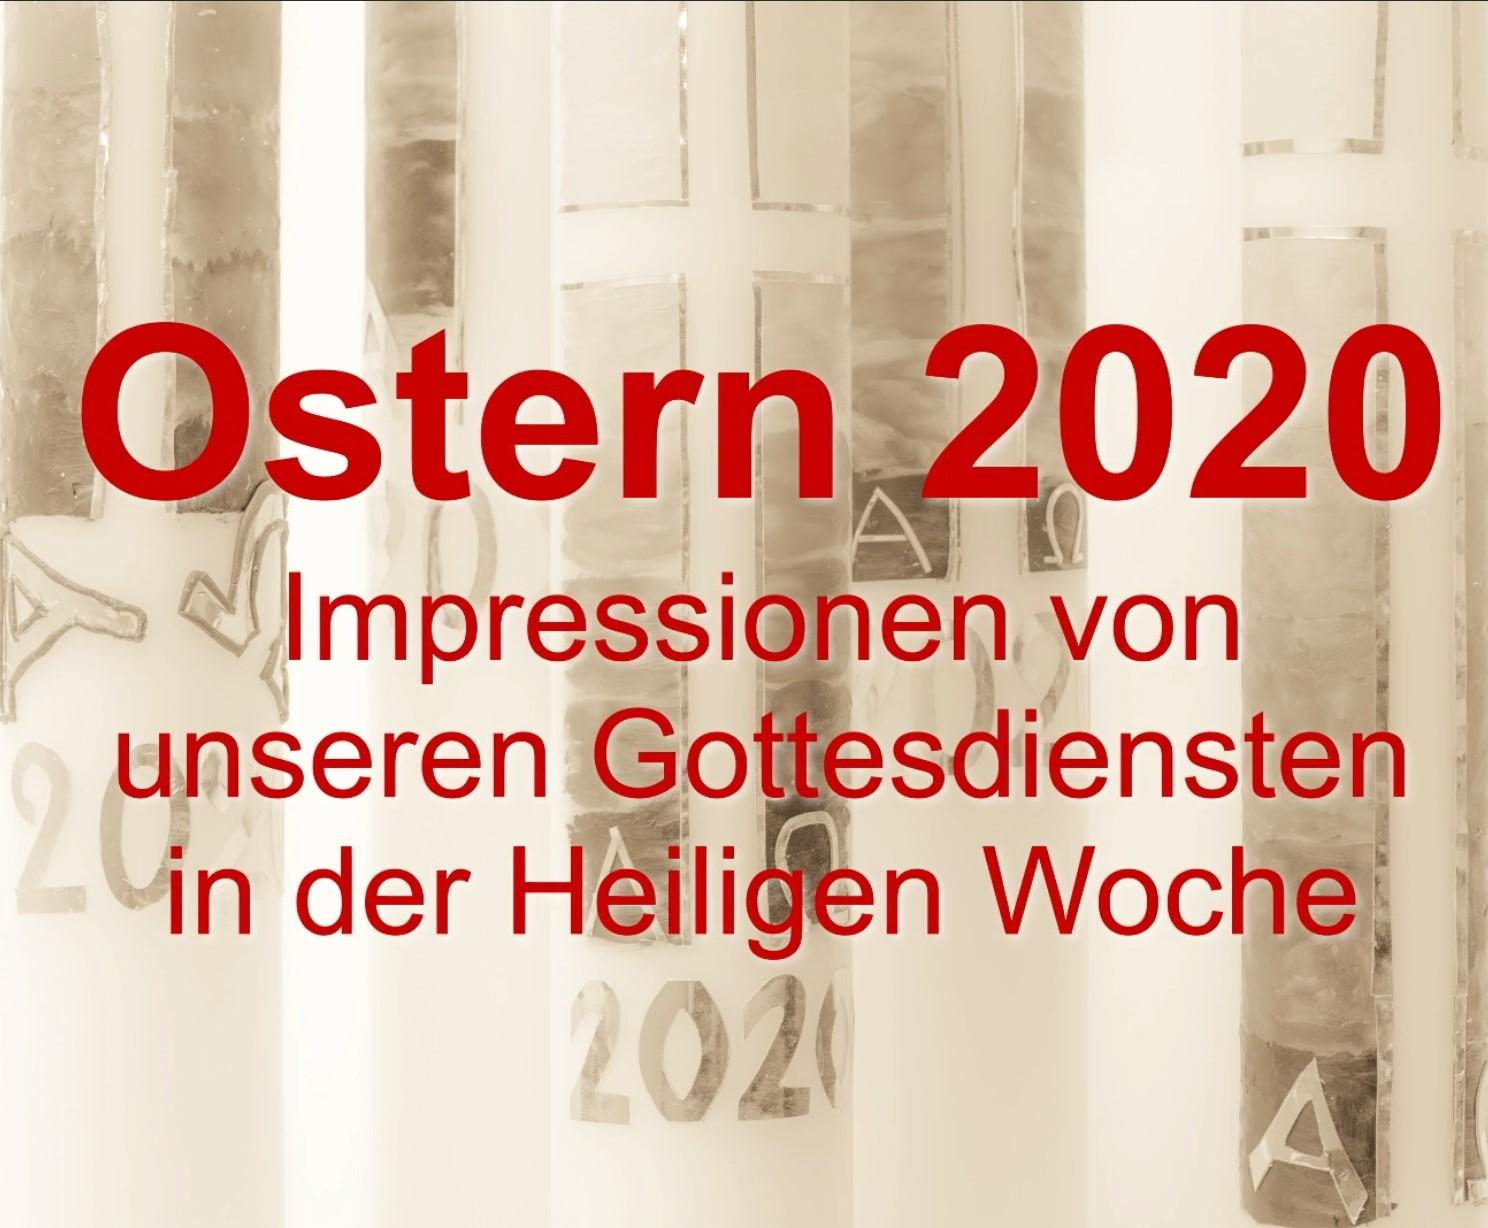 Ostern-2020-Video (c) Michael Rieth